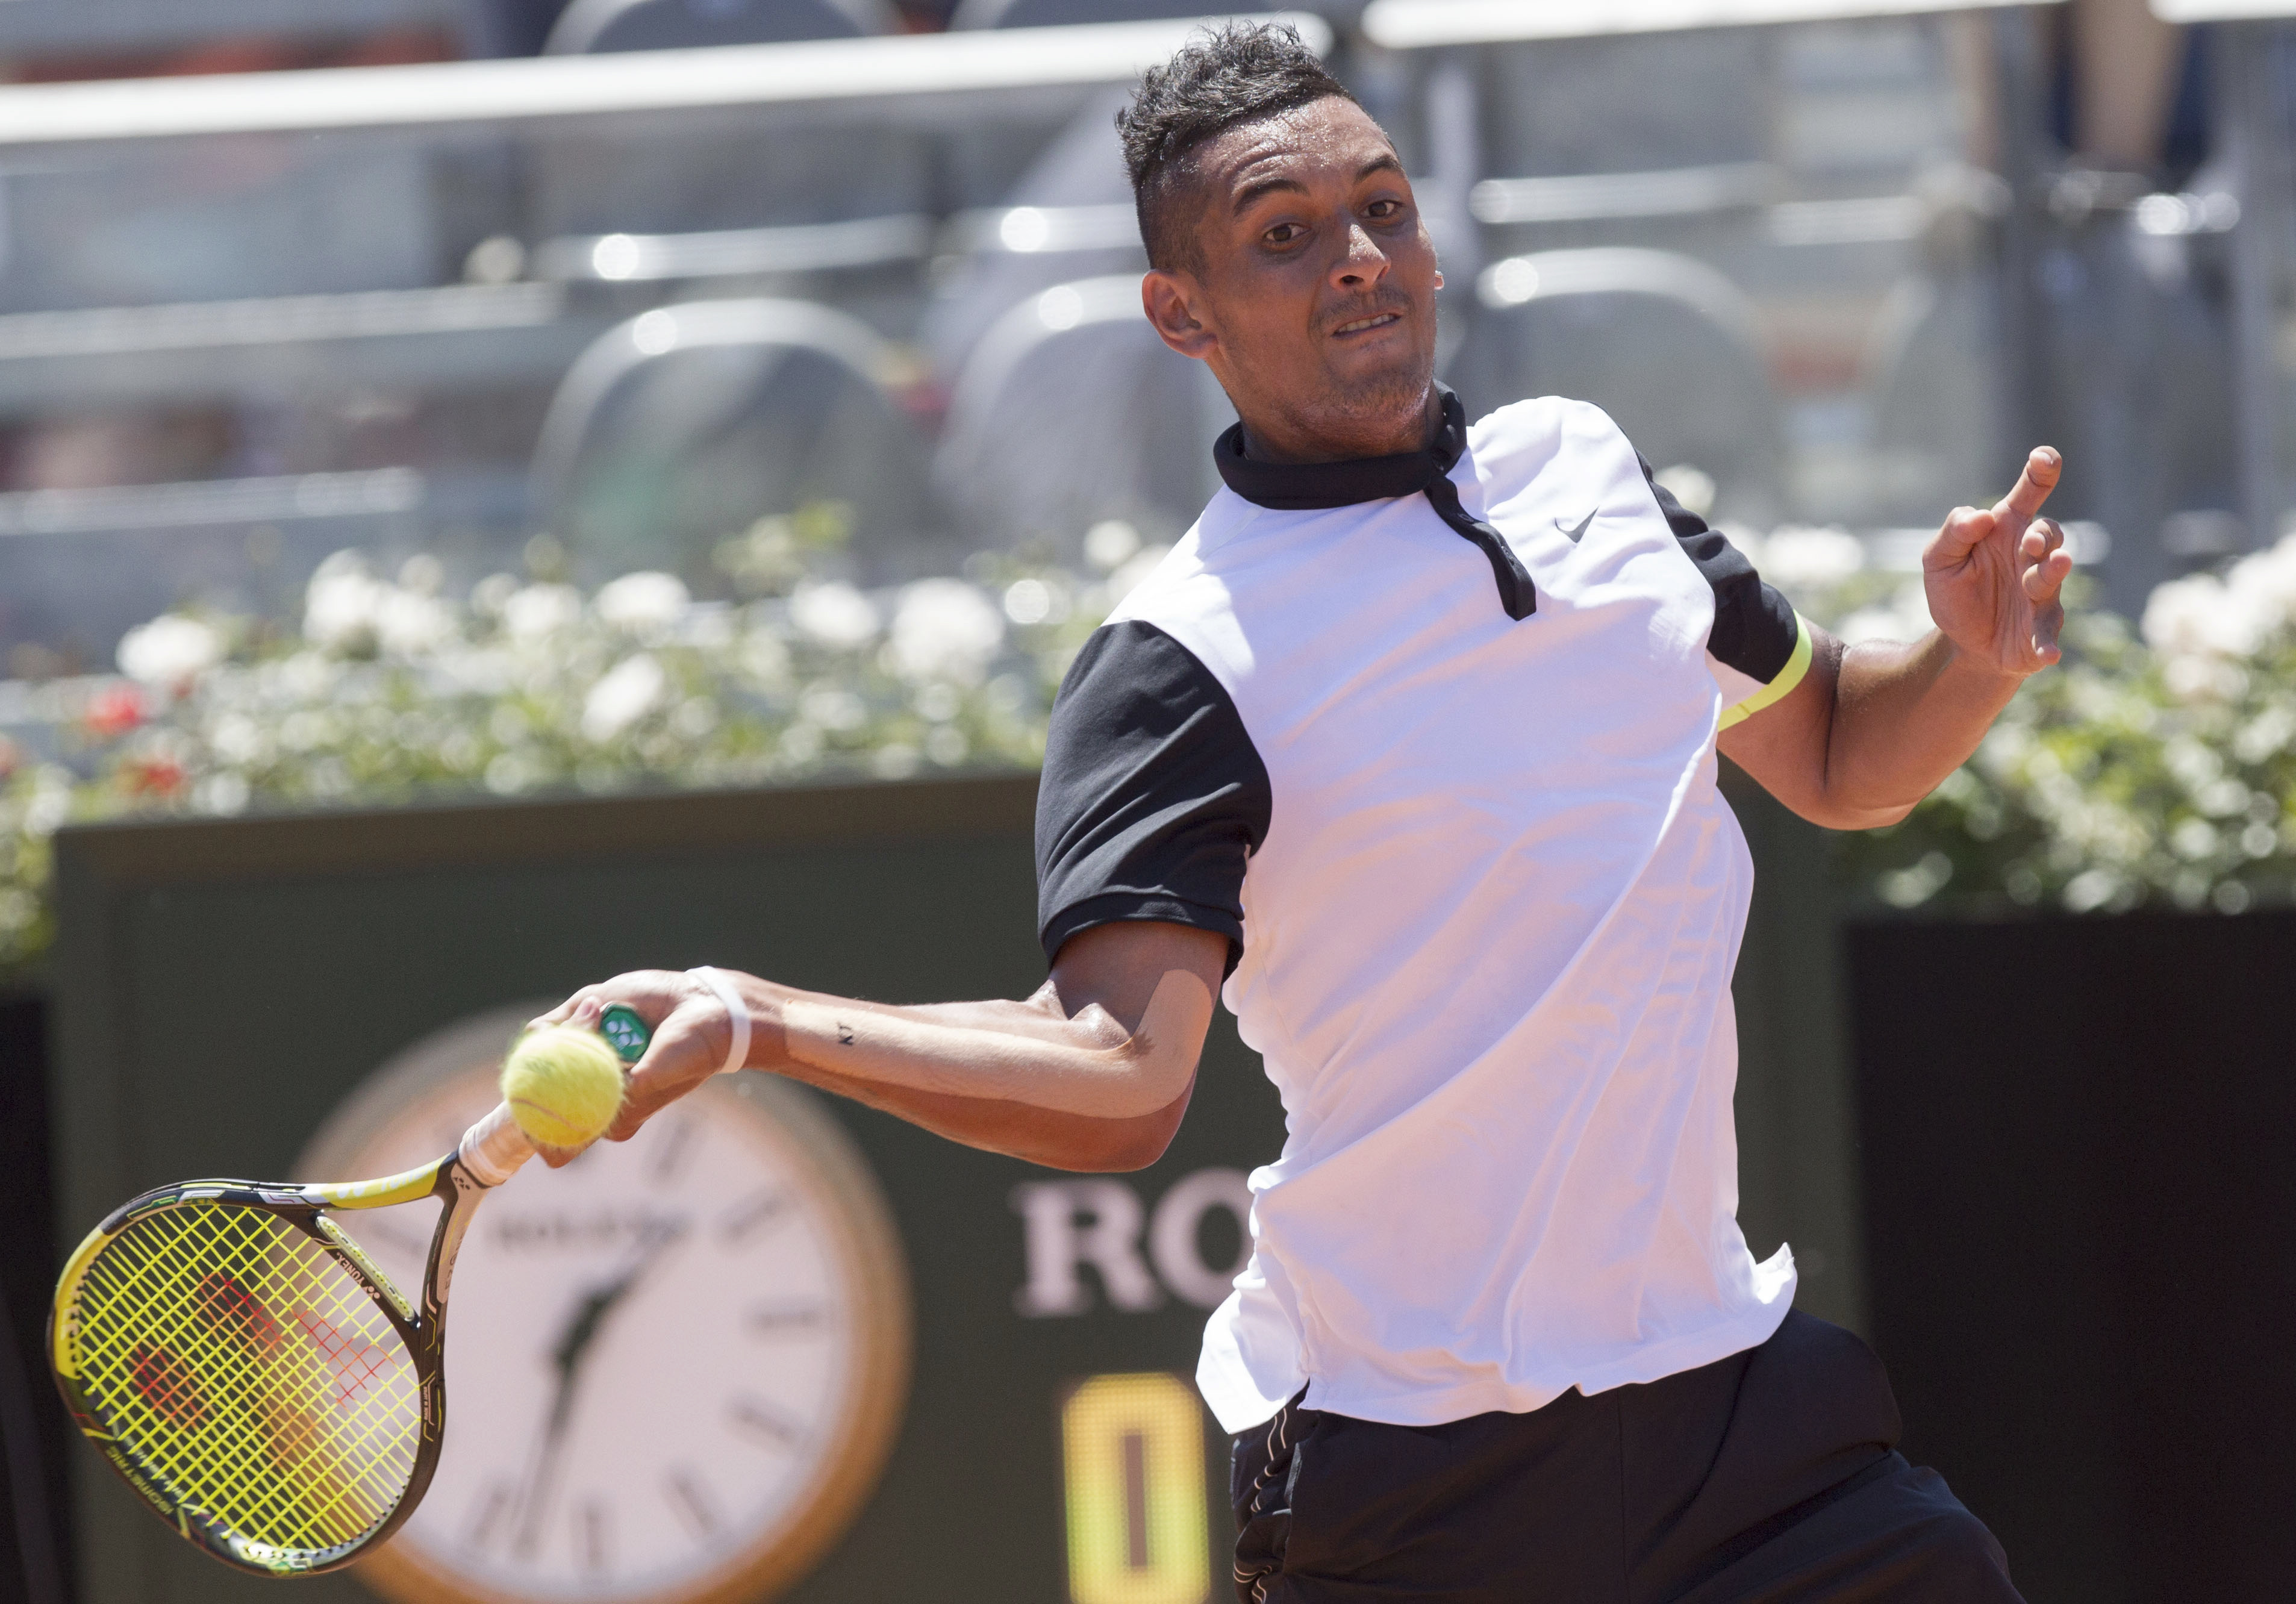 Australia's Nick Kyrgios returns the ball to Spain's Feliciano Lopez during their match at the Italian Open tennis tournament, in Rome, Tuesday, May 12, 2015. (AP Photo/Riccardo De Luca)